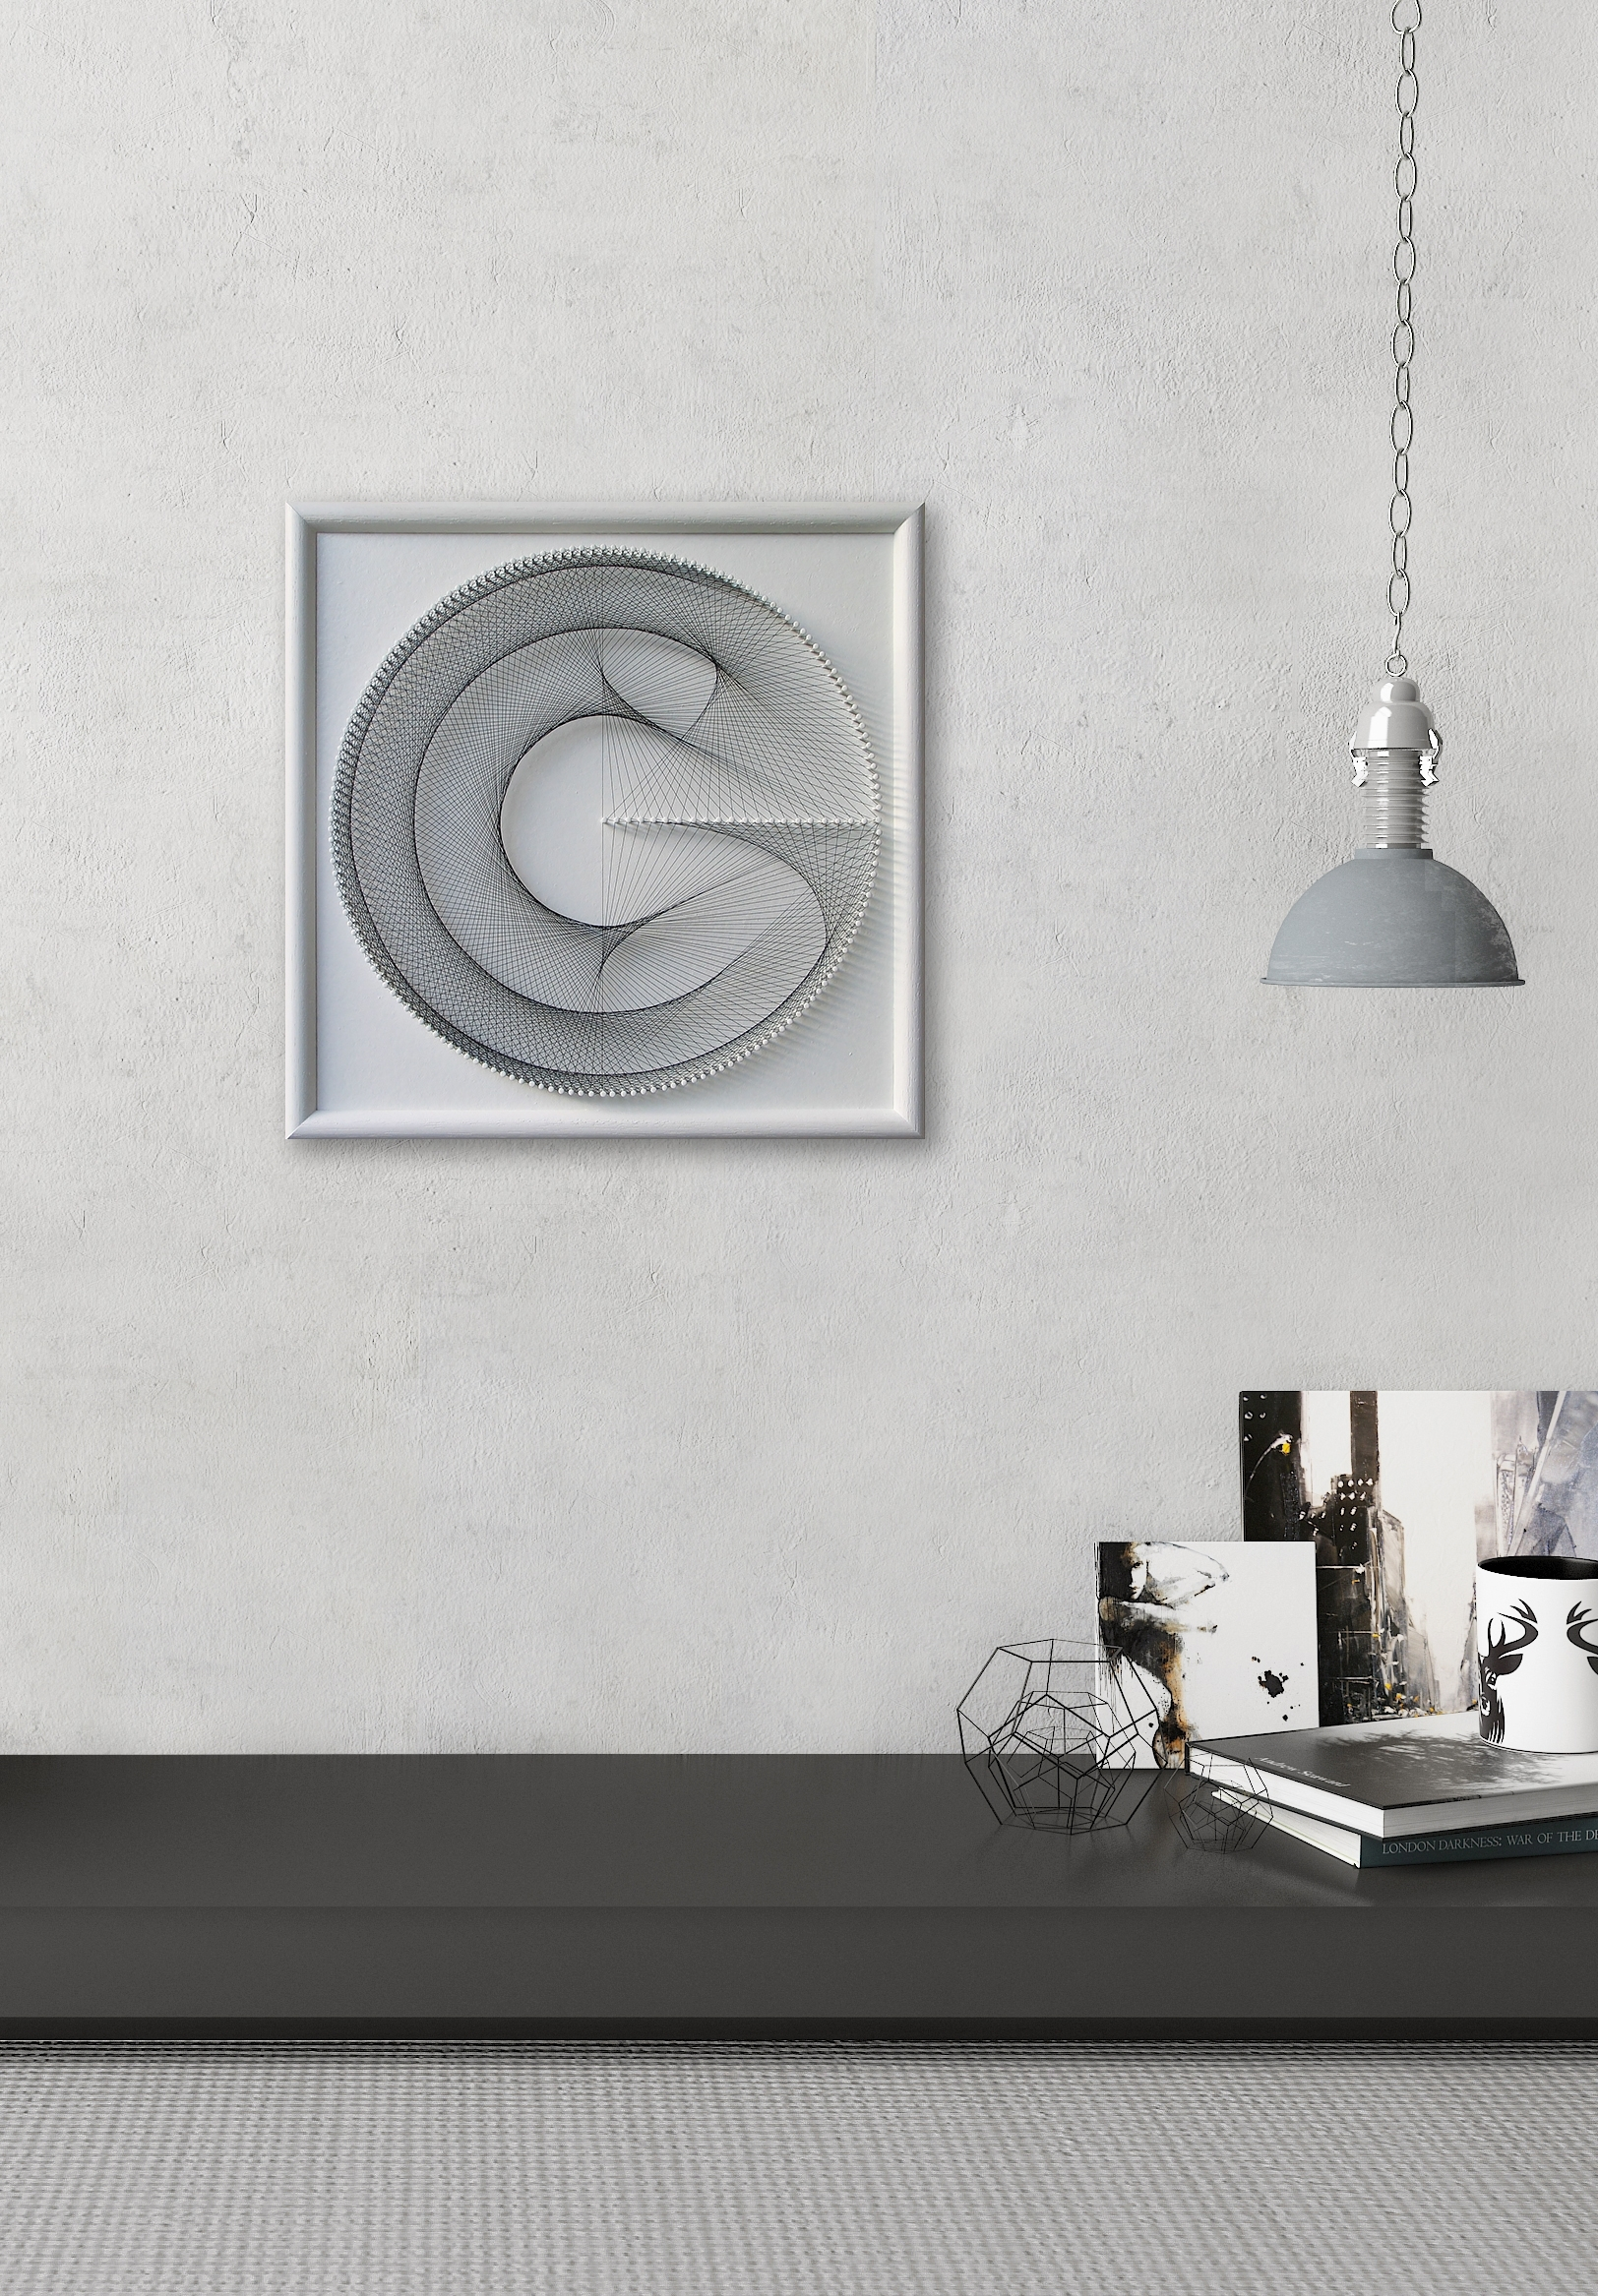 Elegant Geometric String Art – Gift For Her – White Wall Art Zen Within Most Recently Released White Wall Art (View 6 of 20)